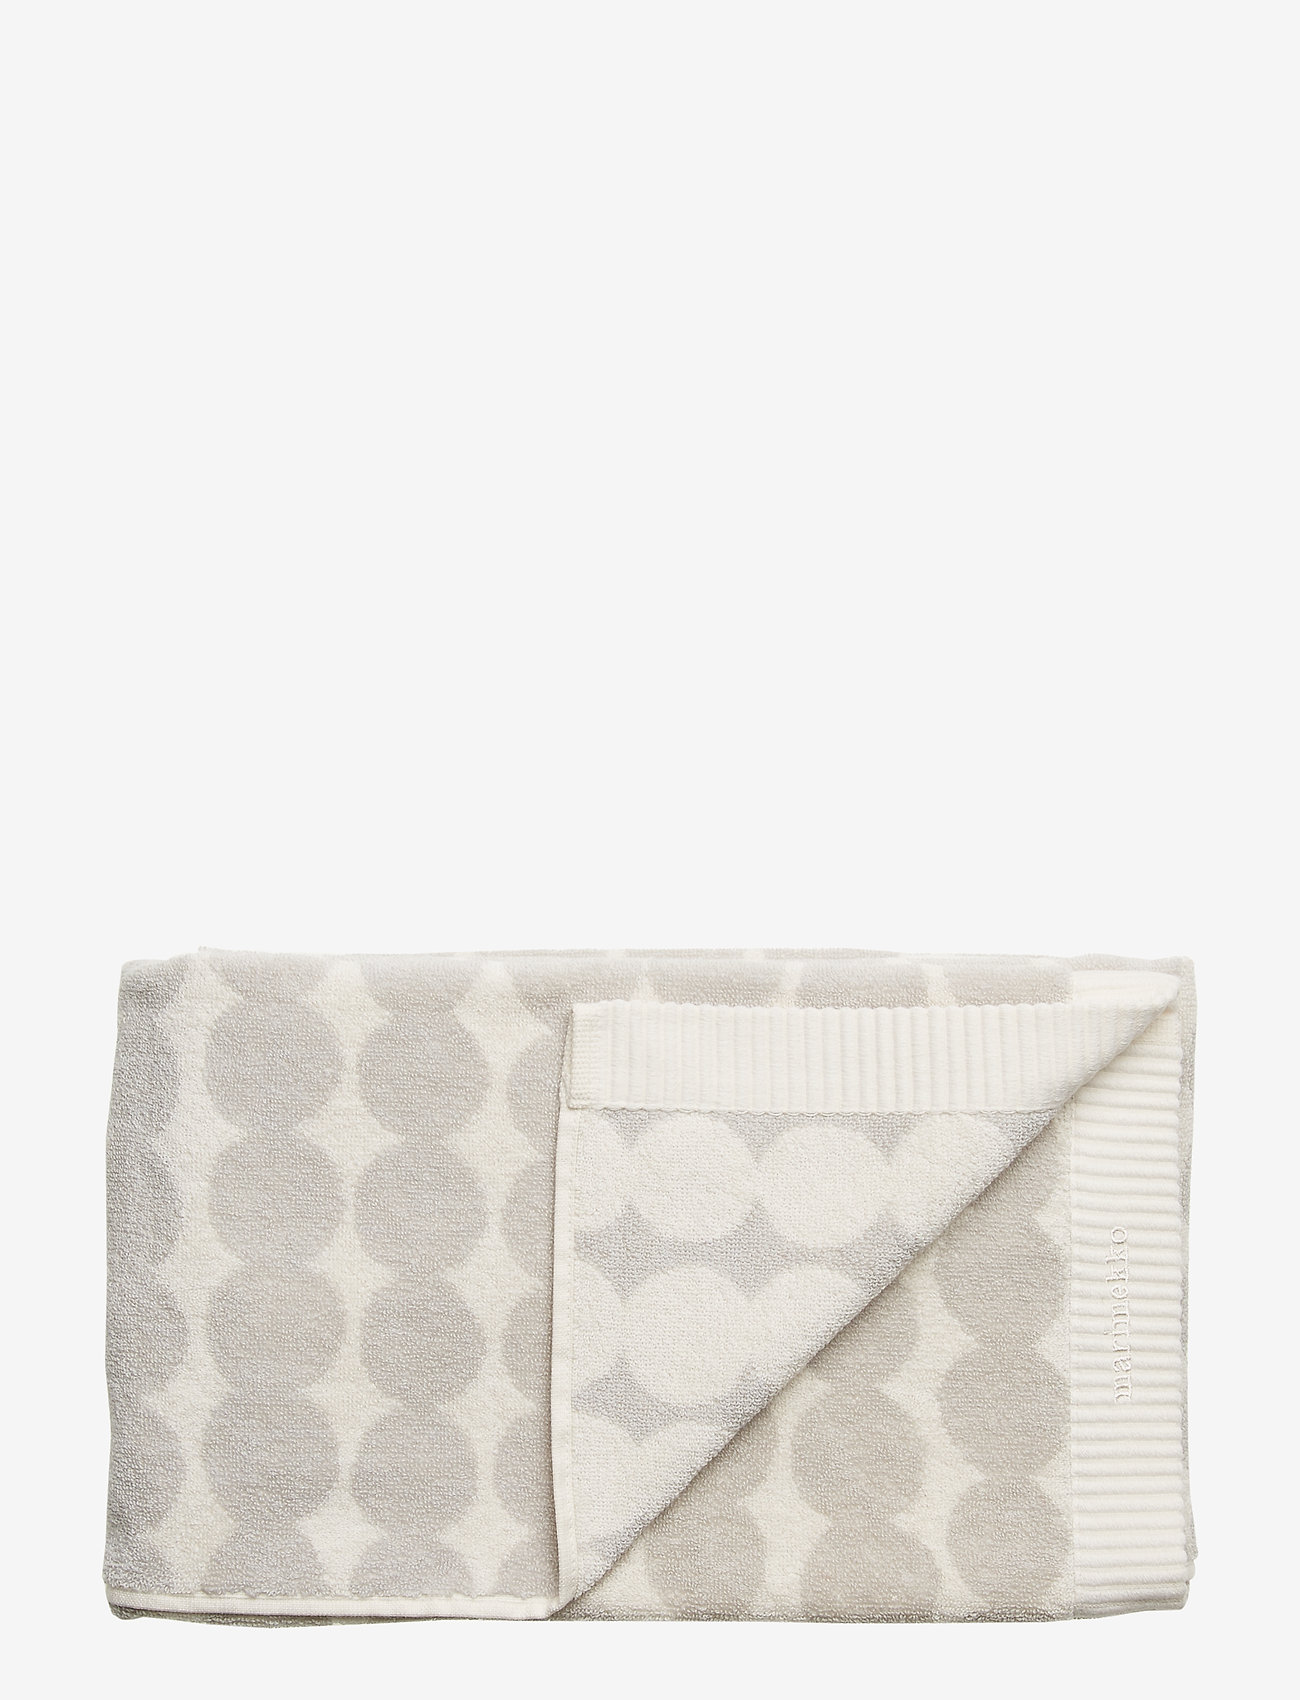 Marimekko Home - RÄSYMATTO BATH TOWEL - ręczniki kąpielowe - white, light grey - 0